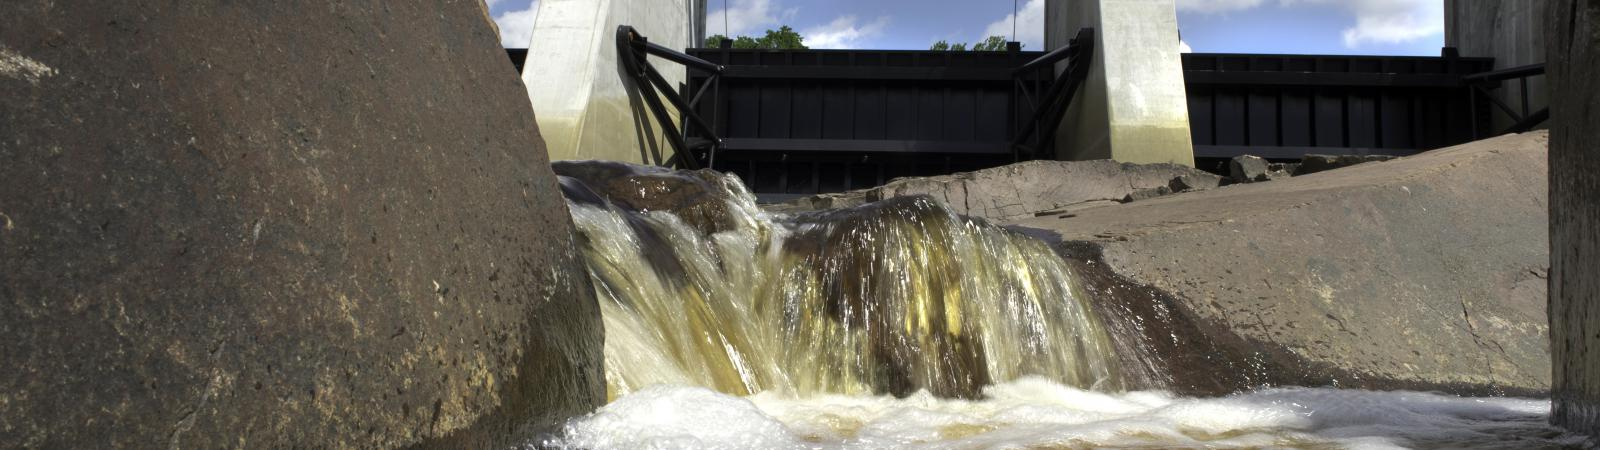 photo water flowing through a gate of the dam